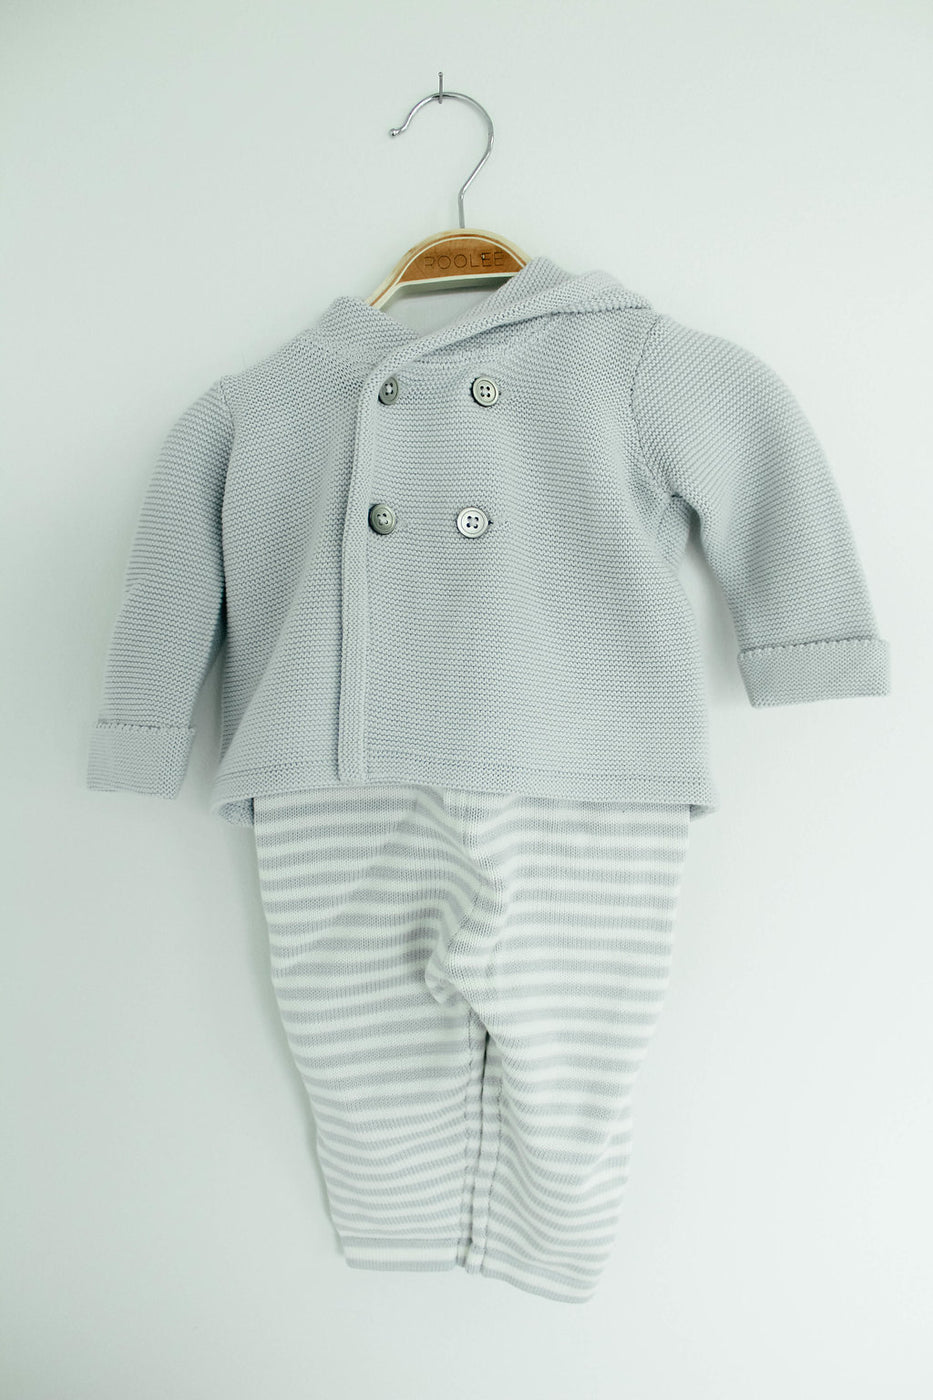 Grey + White Baby Outfit Ideas | ROOLEE Kids